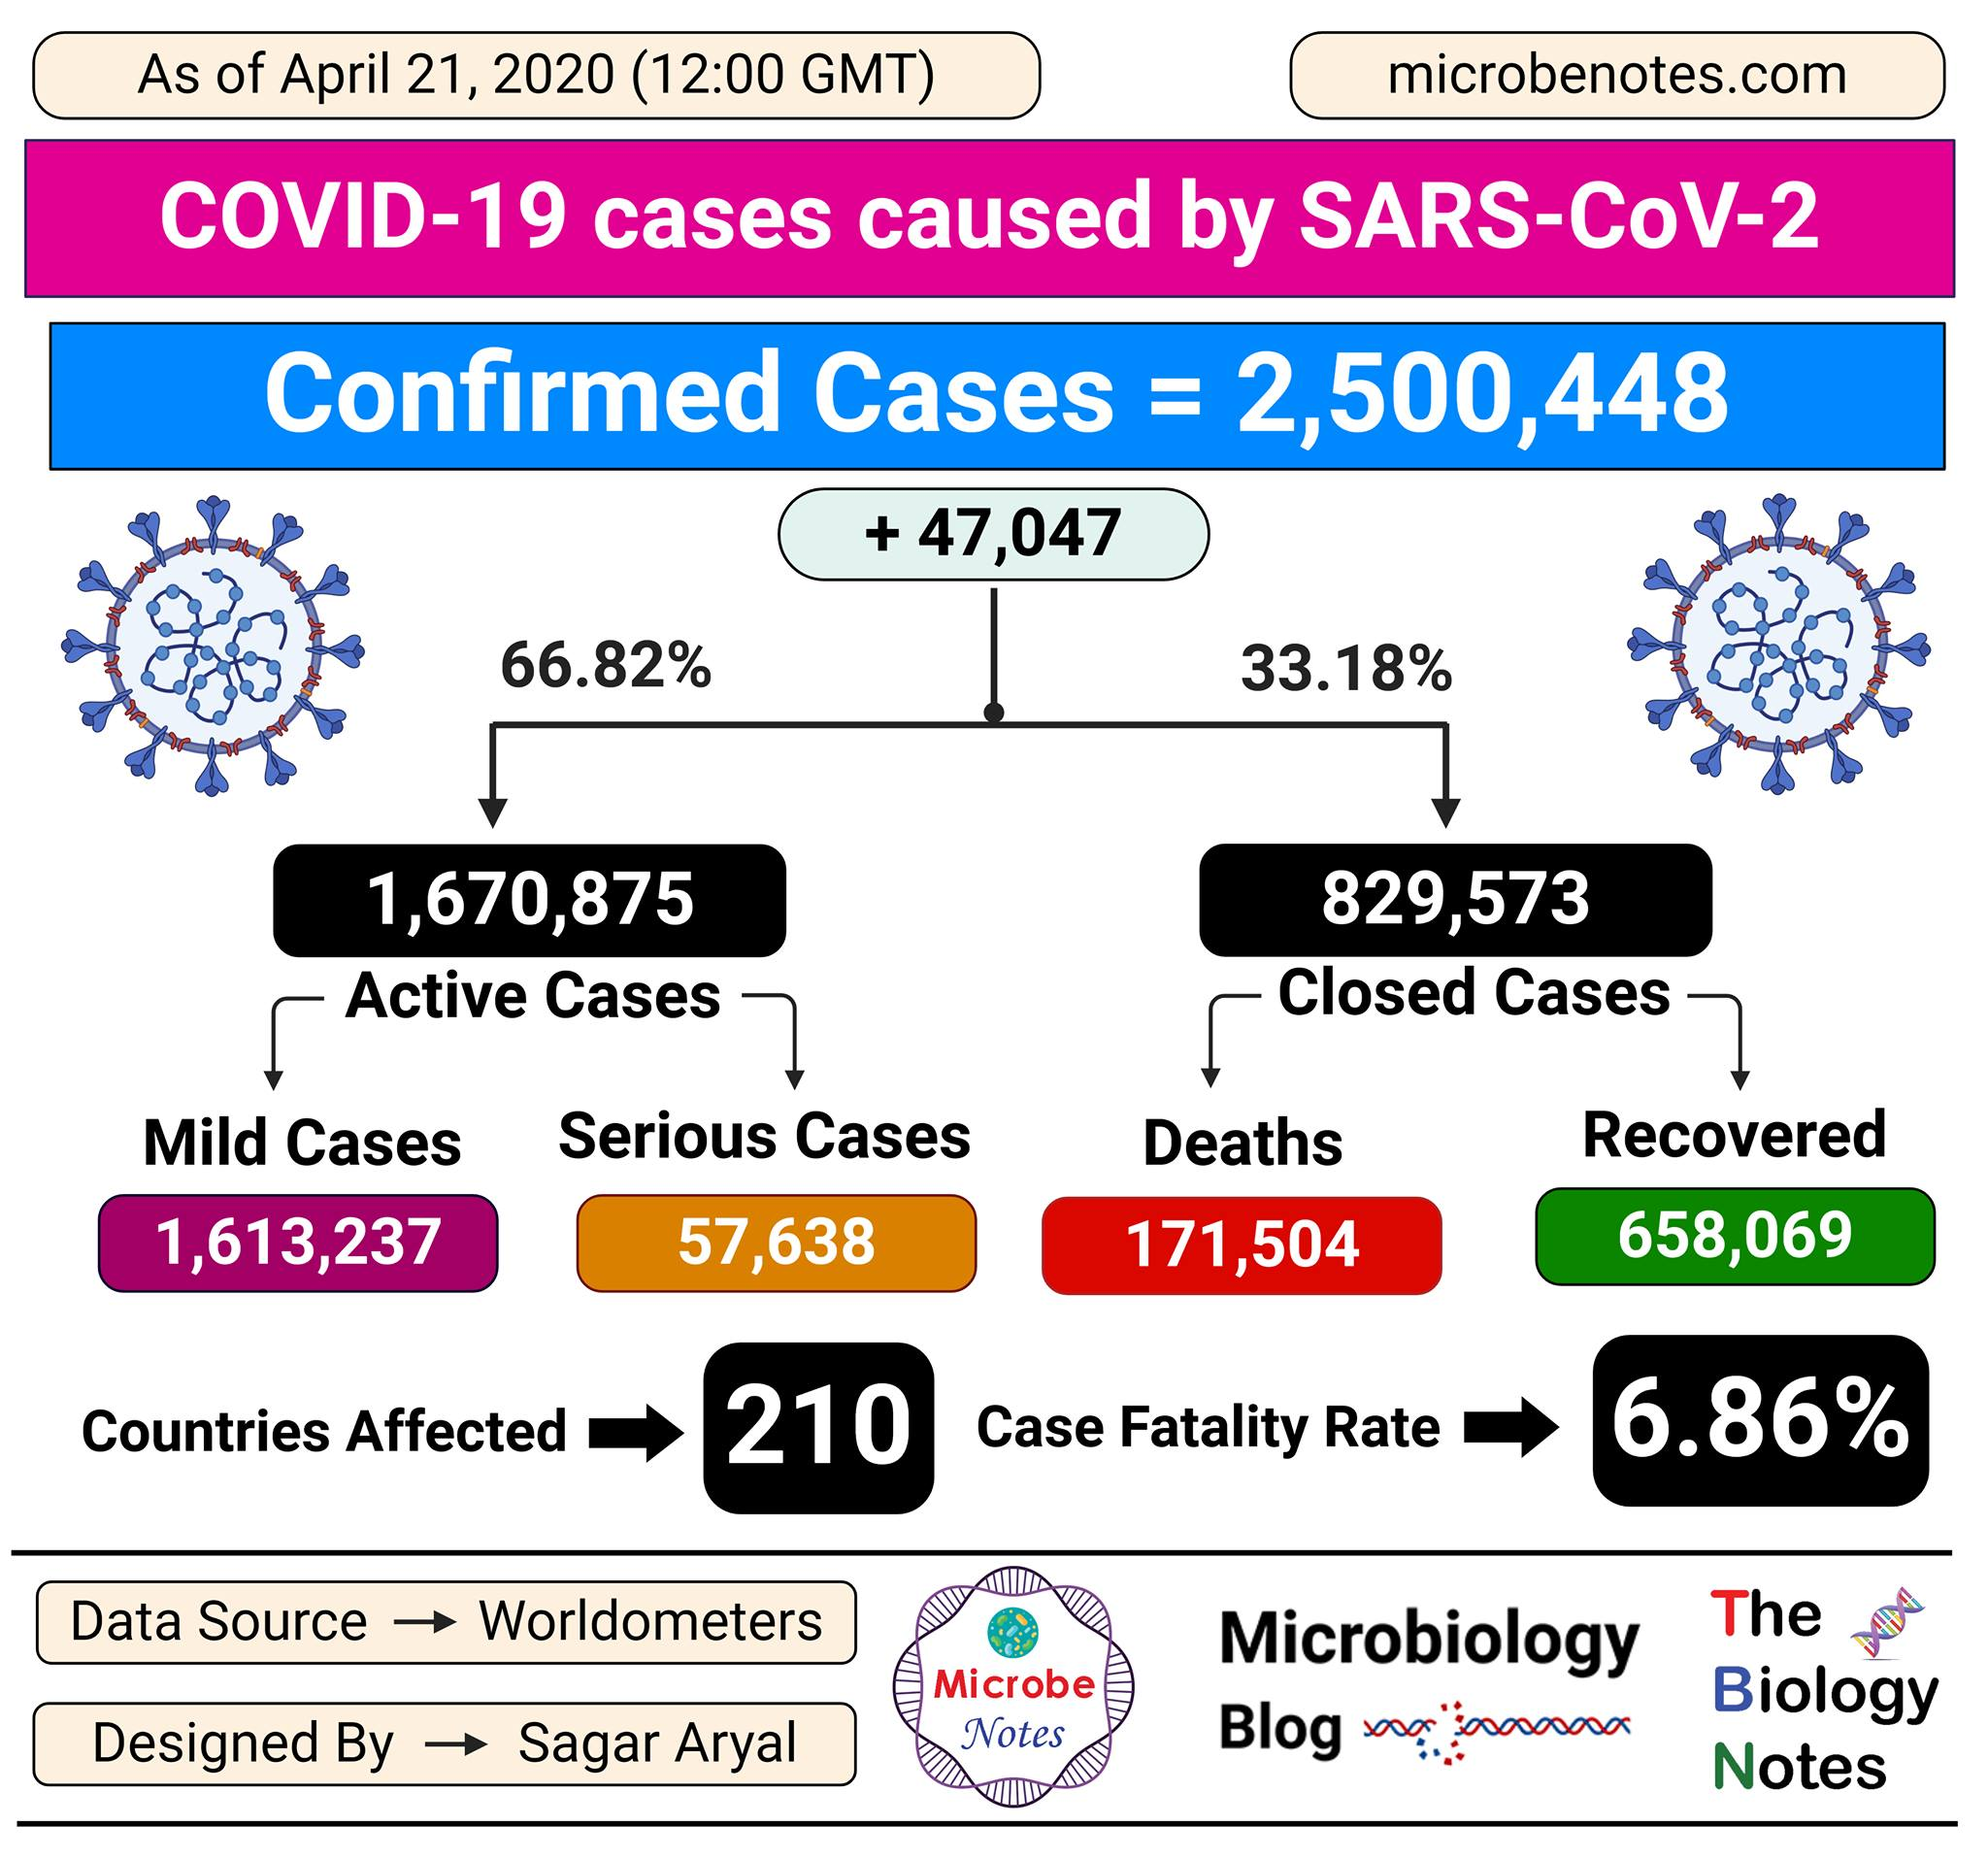 Epidemiology of COVID-19 caused by SARS-CoV-2 as of April 21, 2020